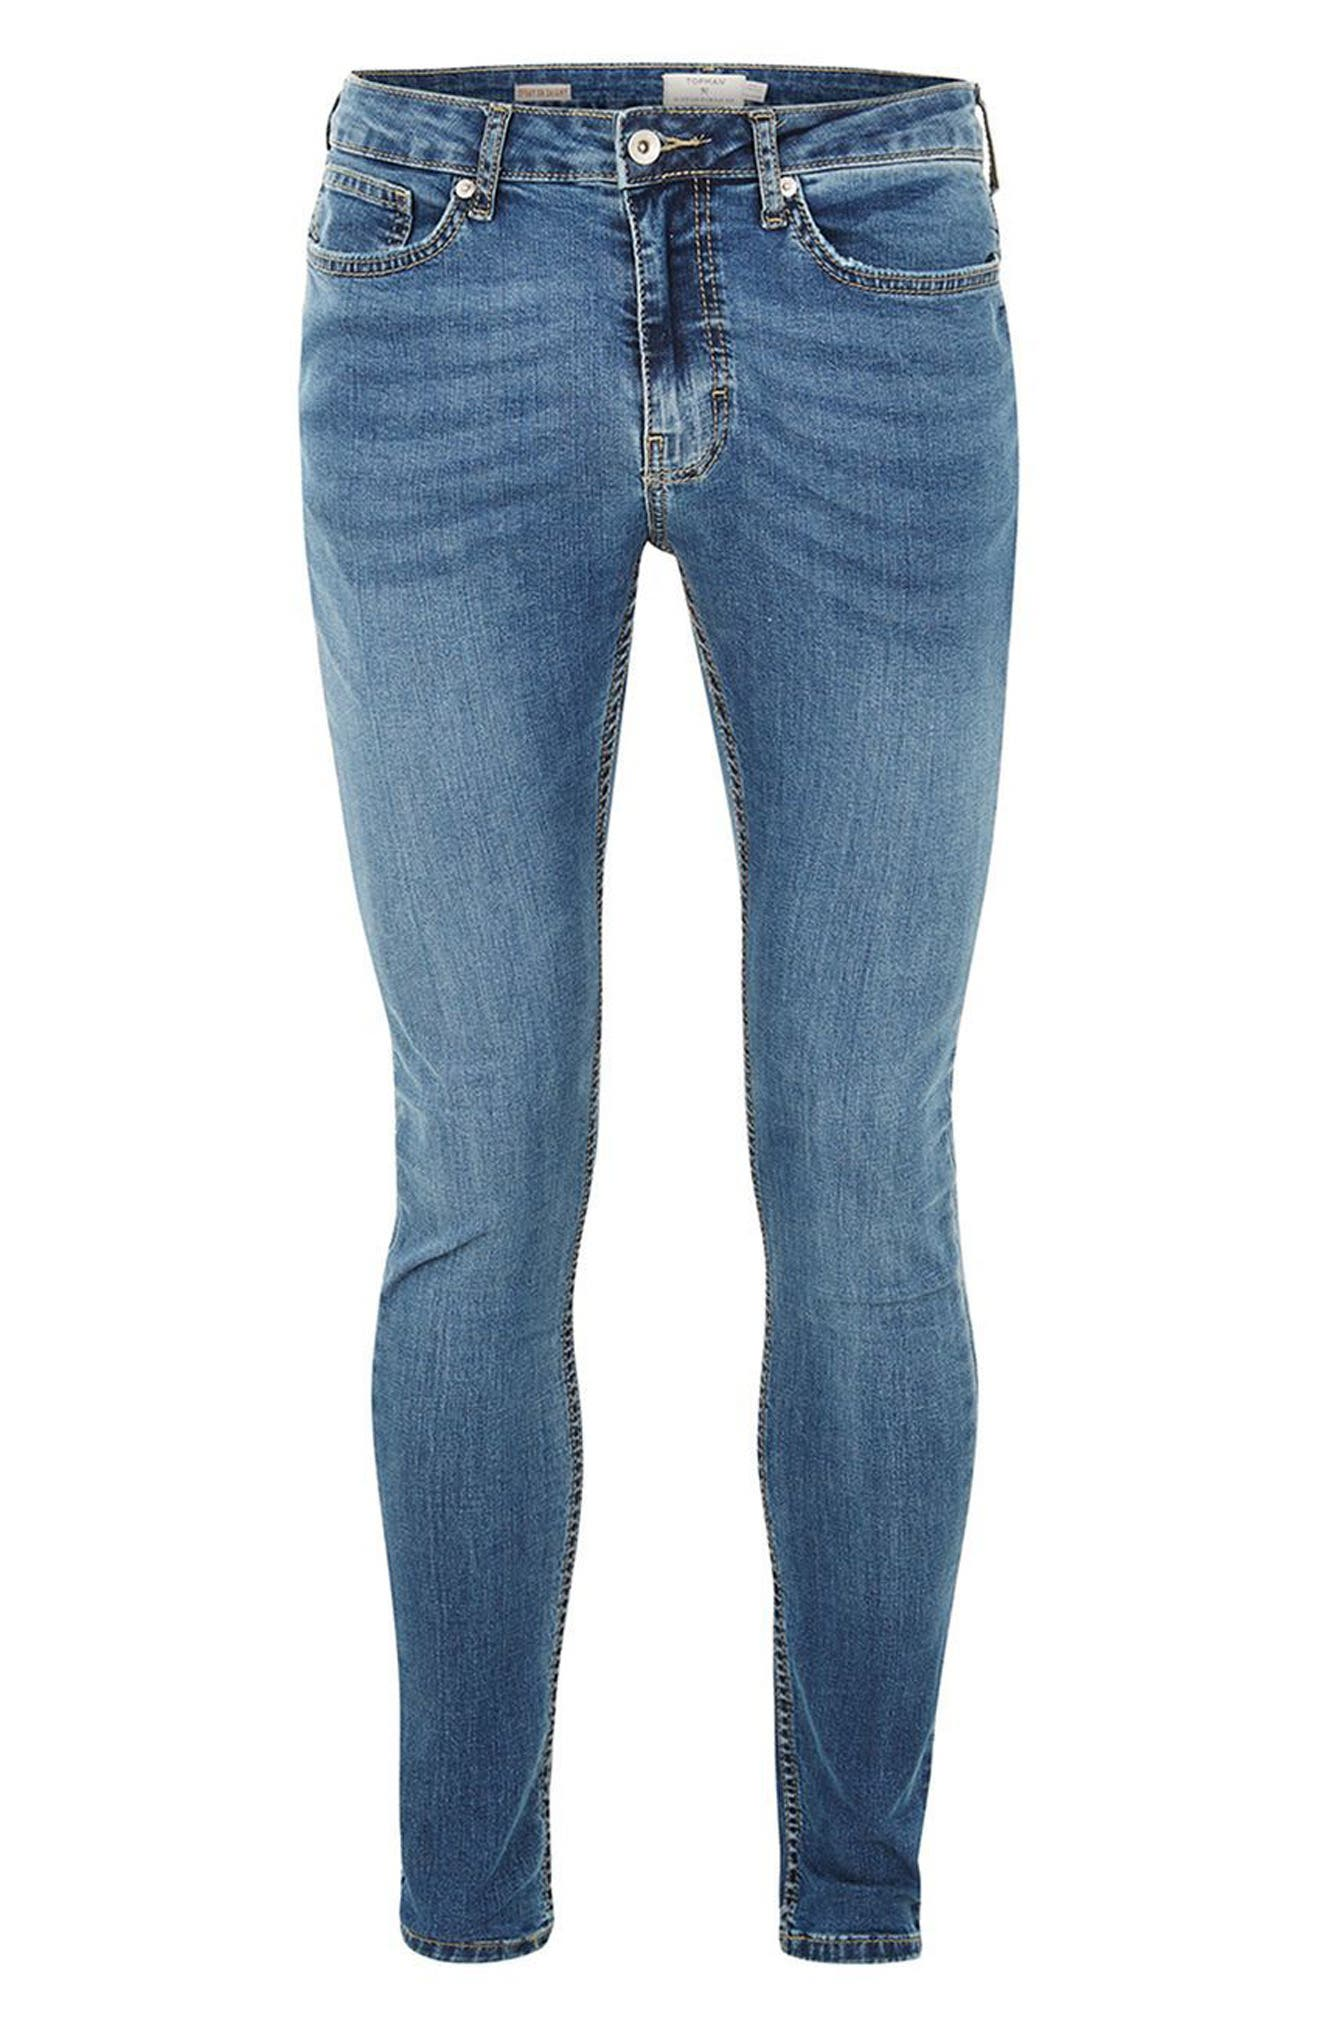 Skinny Fit Spray-On Jeans,                             Alternate thumbnail 4, color,                             400